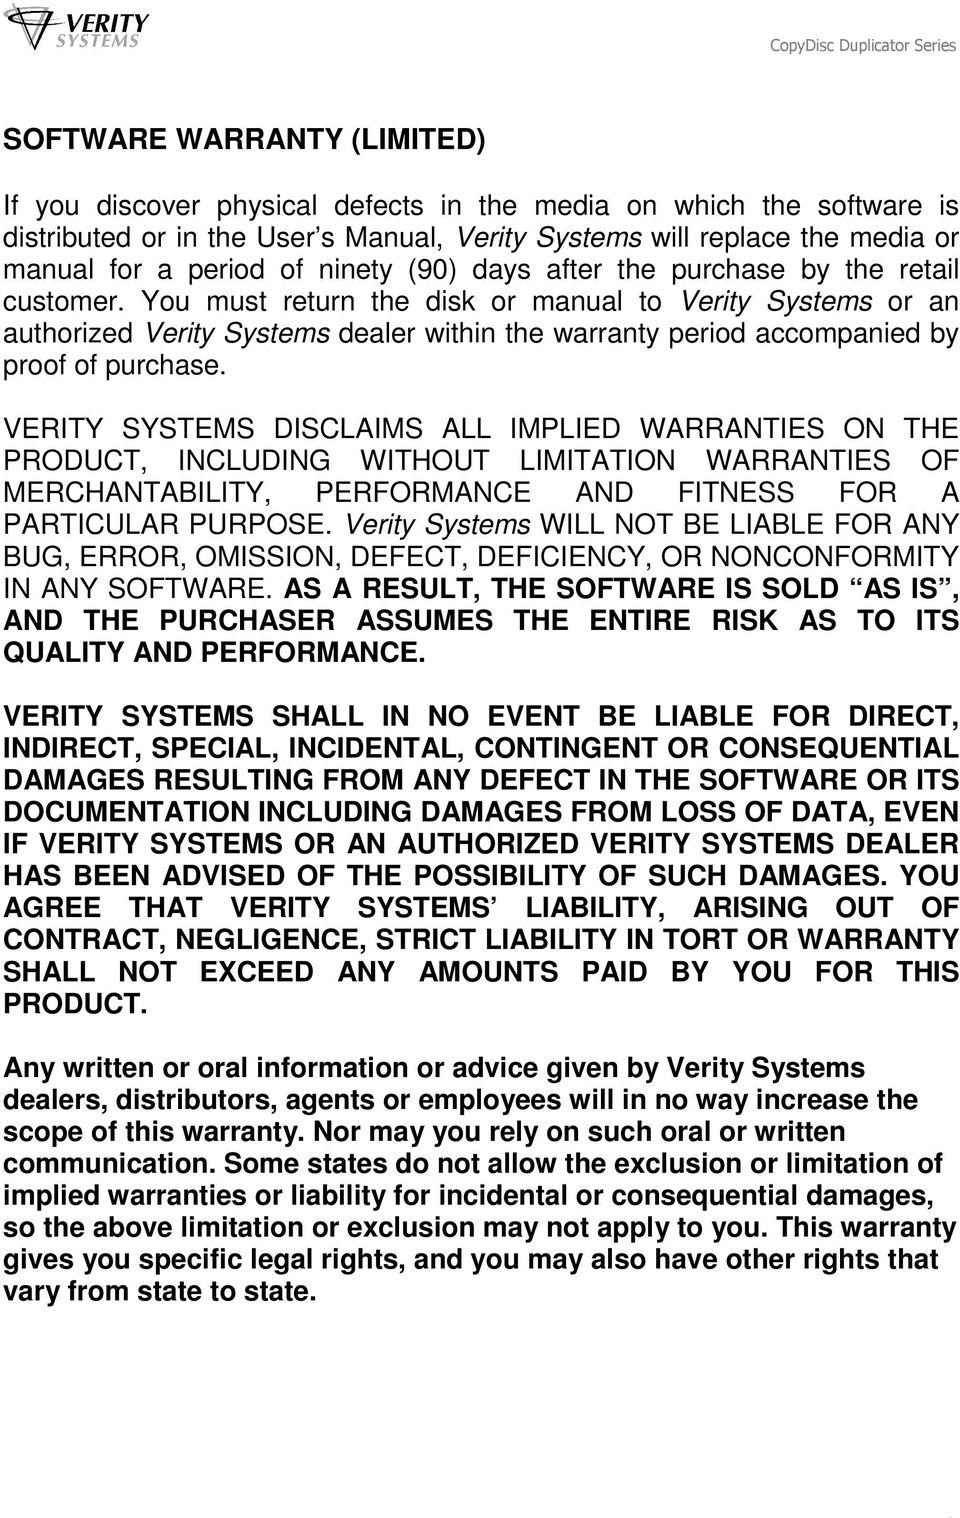 You must return the disk or manual to Verity Systems or an authorized Verity Systems dealer within the warranty period accompanied by proof of purchase.